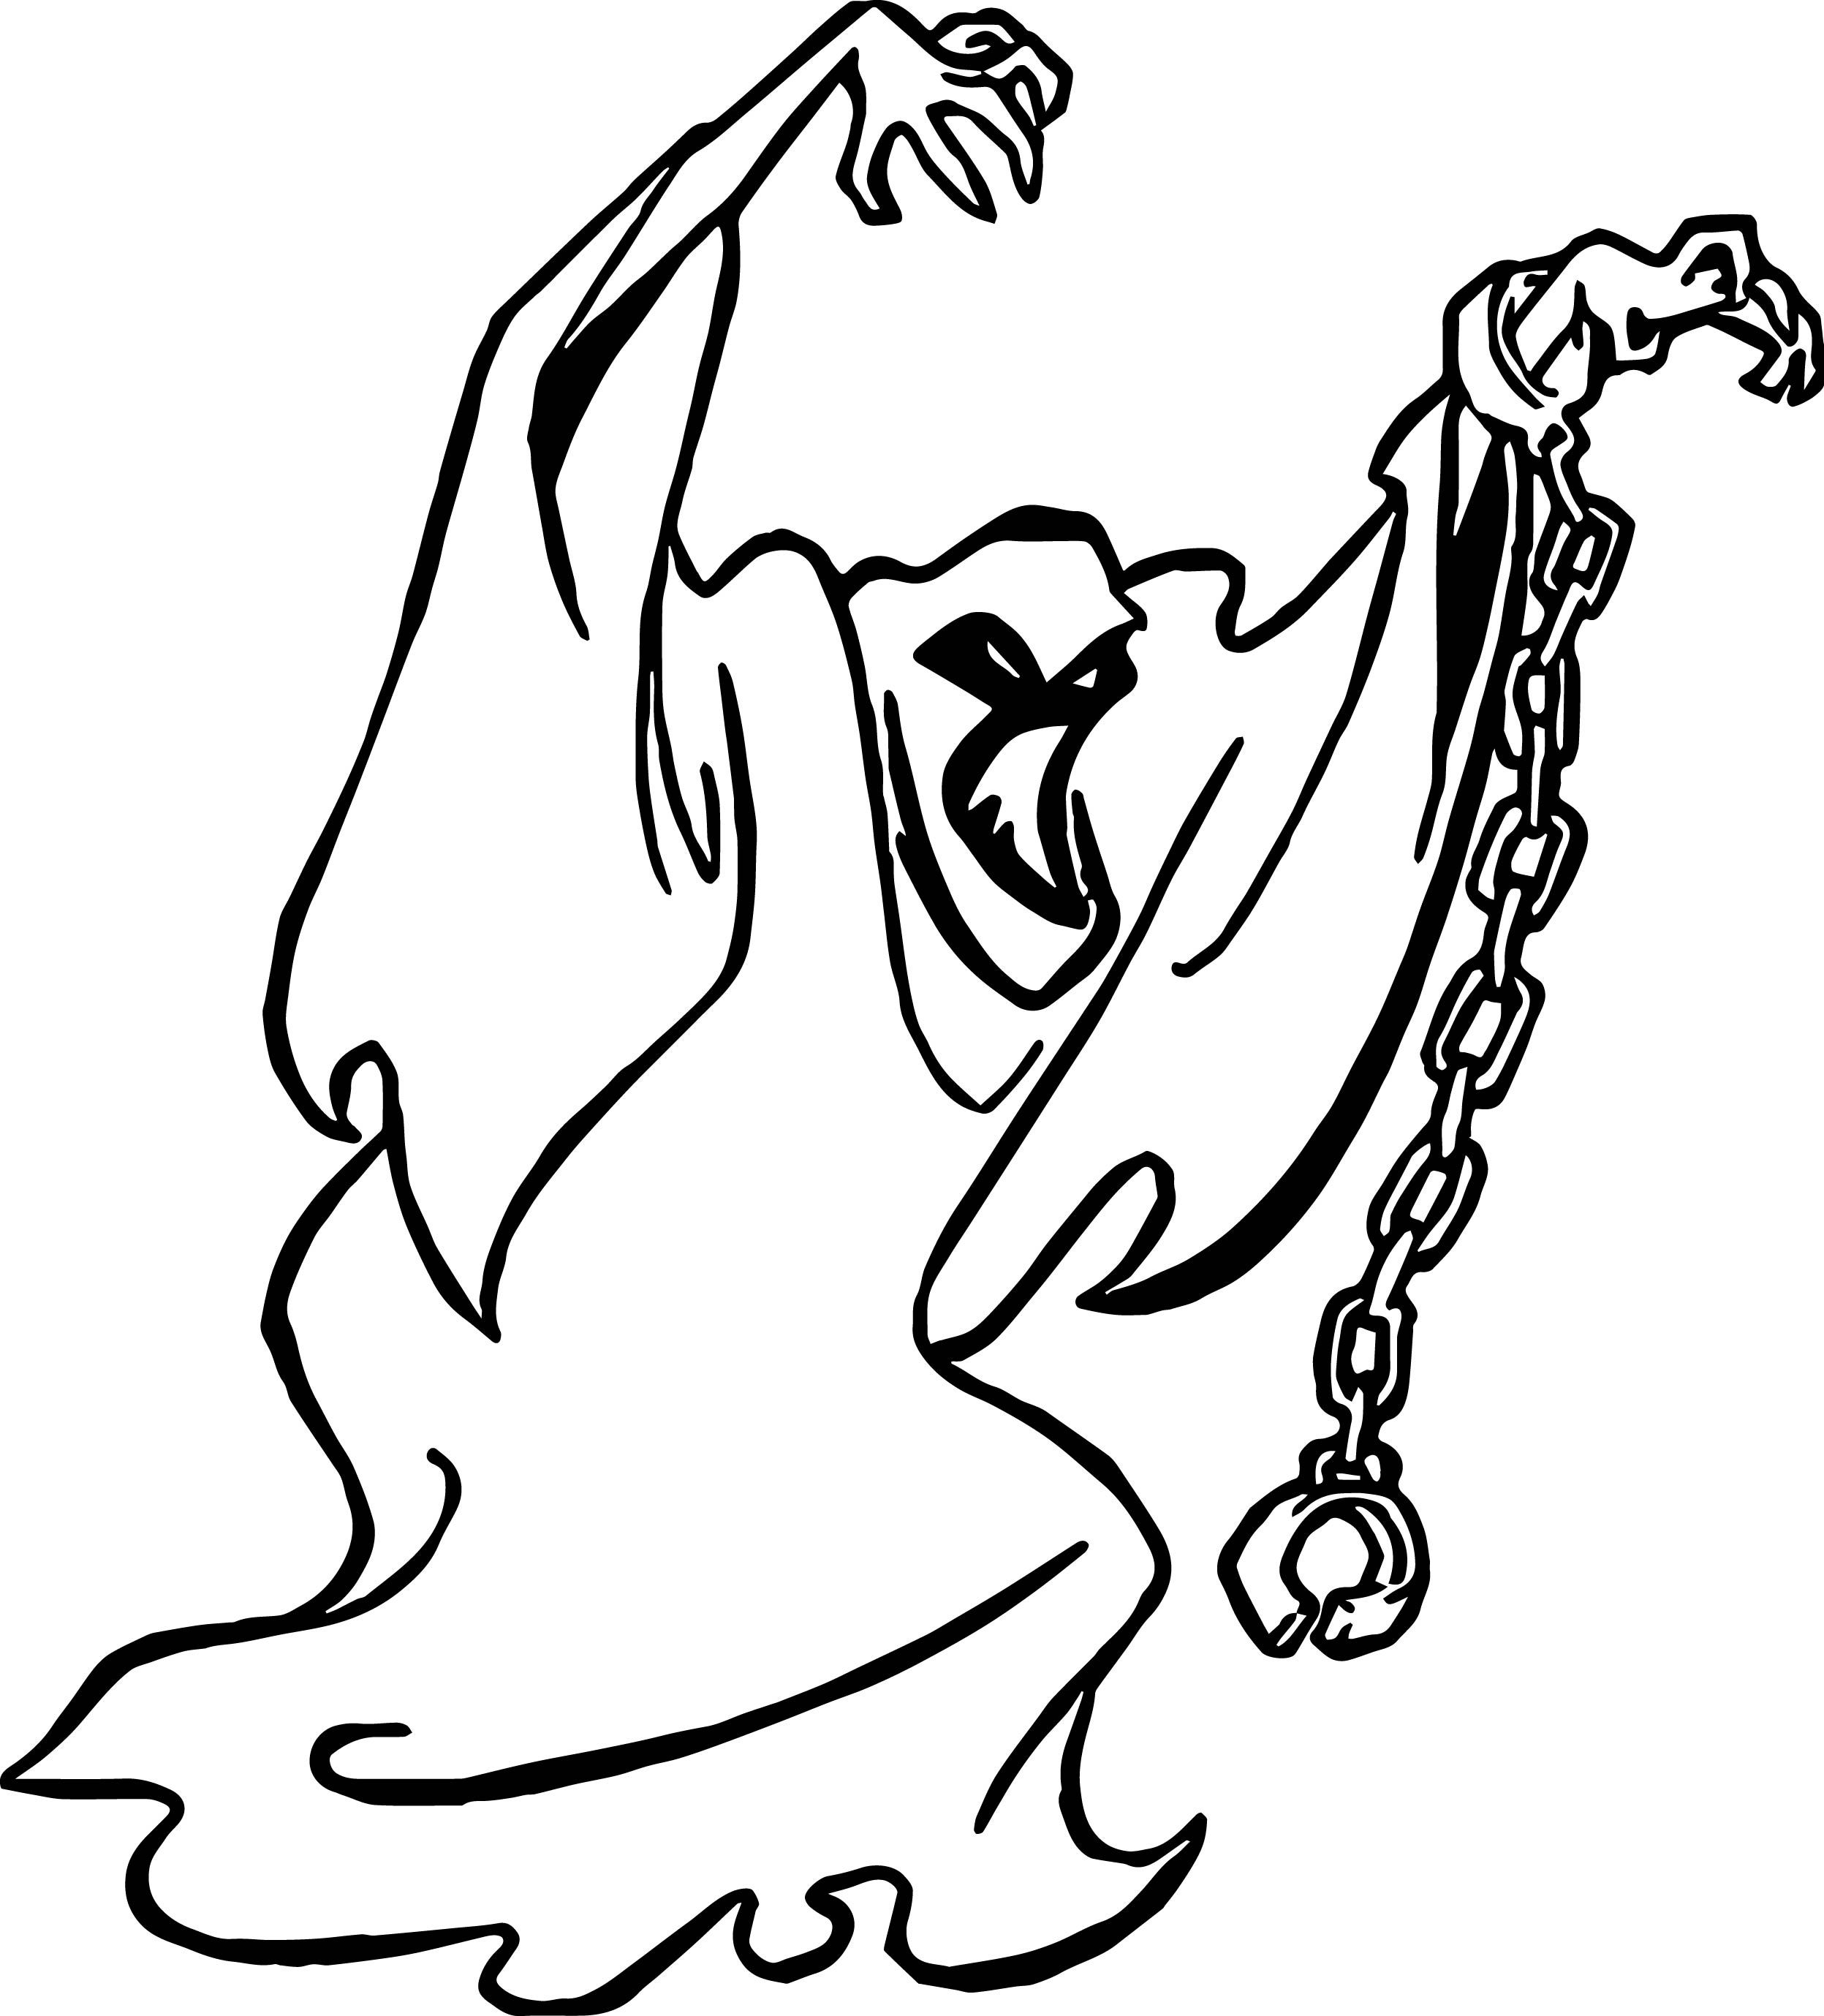 25 Scooby Doo Coloring Pages Pictures | FREE COLORING PAGES - Part 3